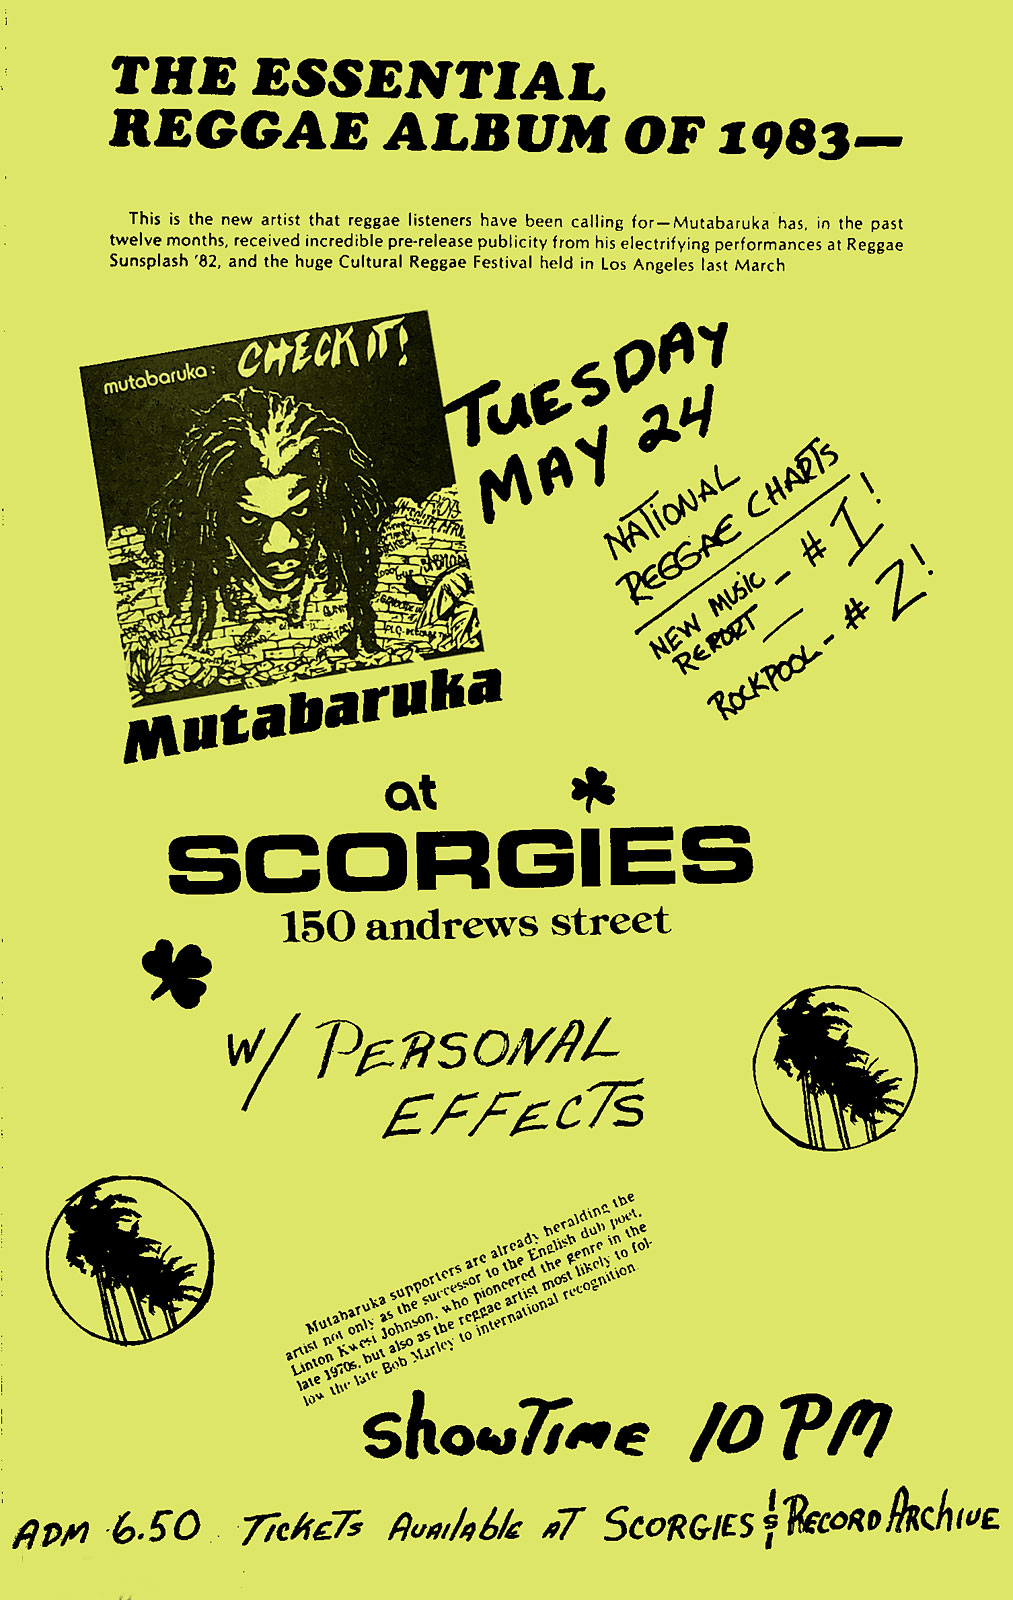 Poster for Mutabaruka and Personal Effects at Scorgie's in Rochester, New York on 05.24.1983. No idea who designed this poster but it was a sensational gig.